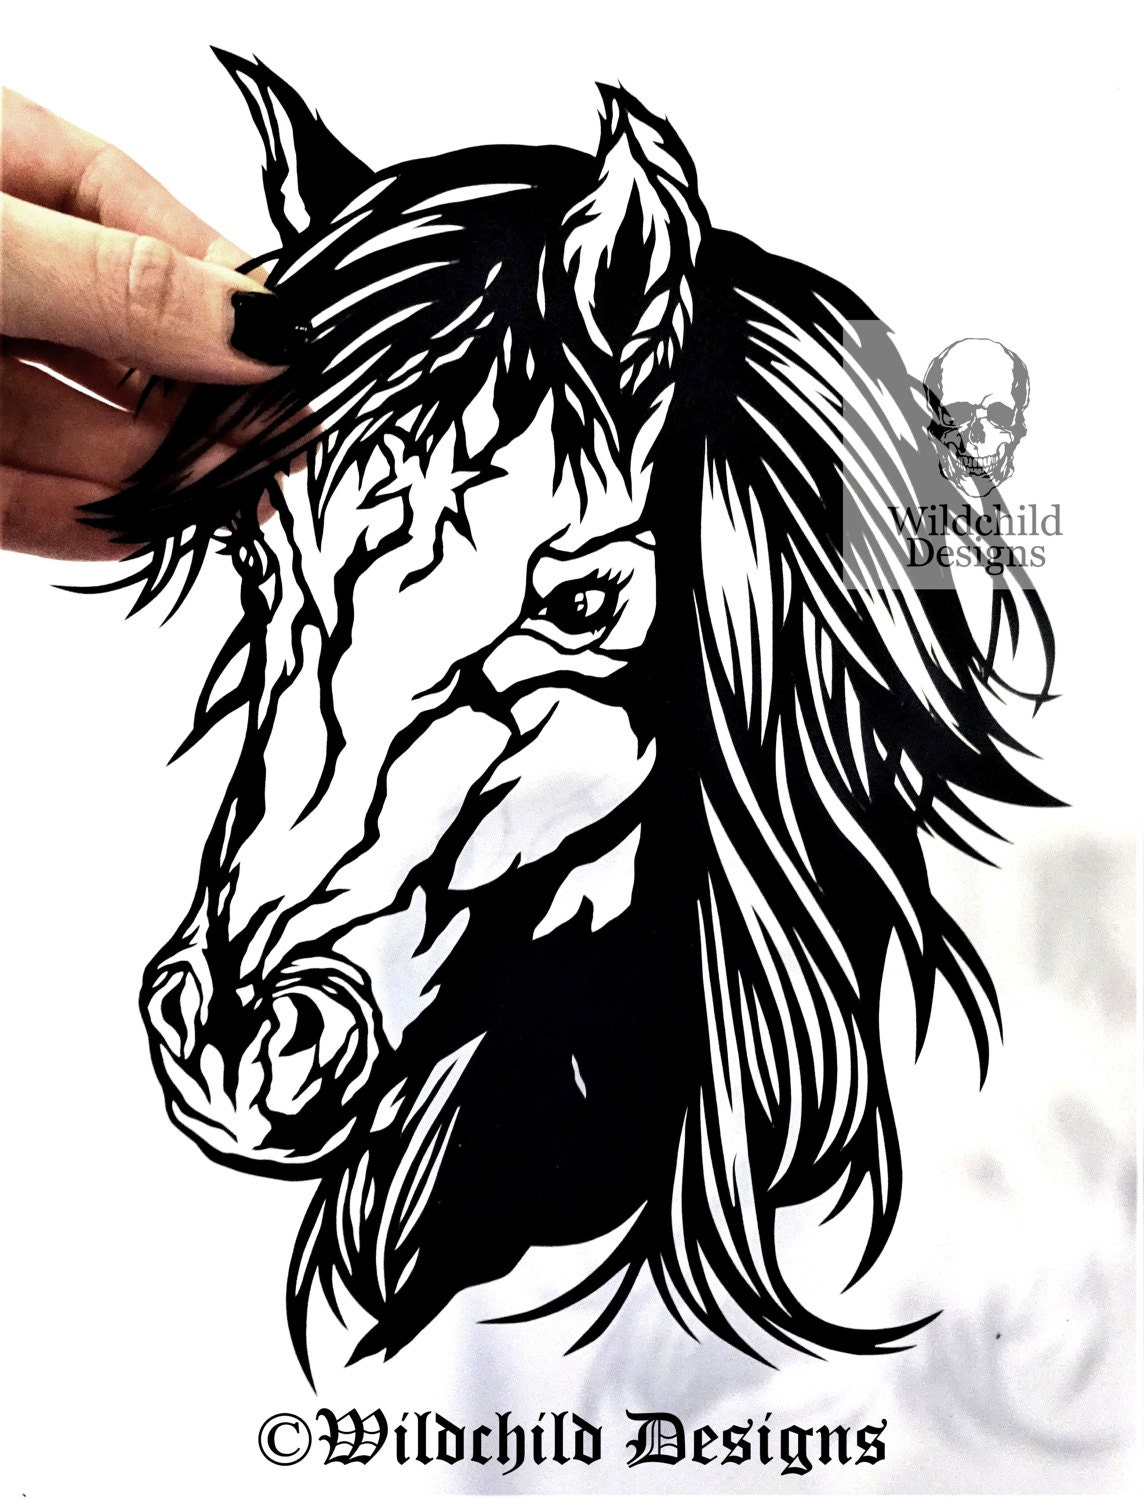 spirit the horse paper cutting template for personal or